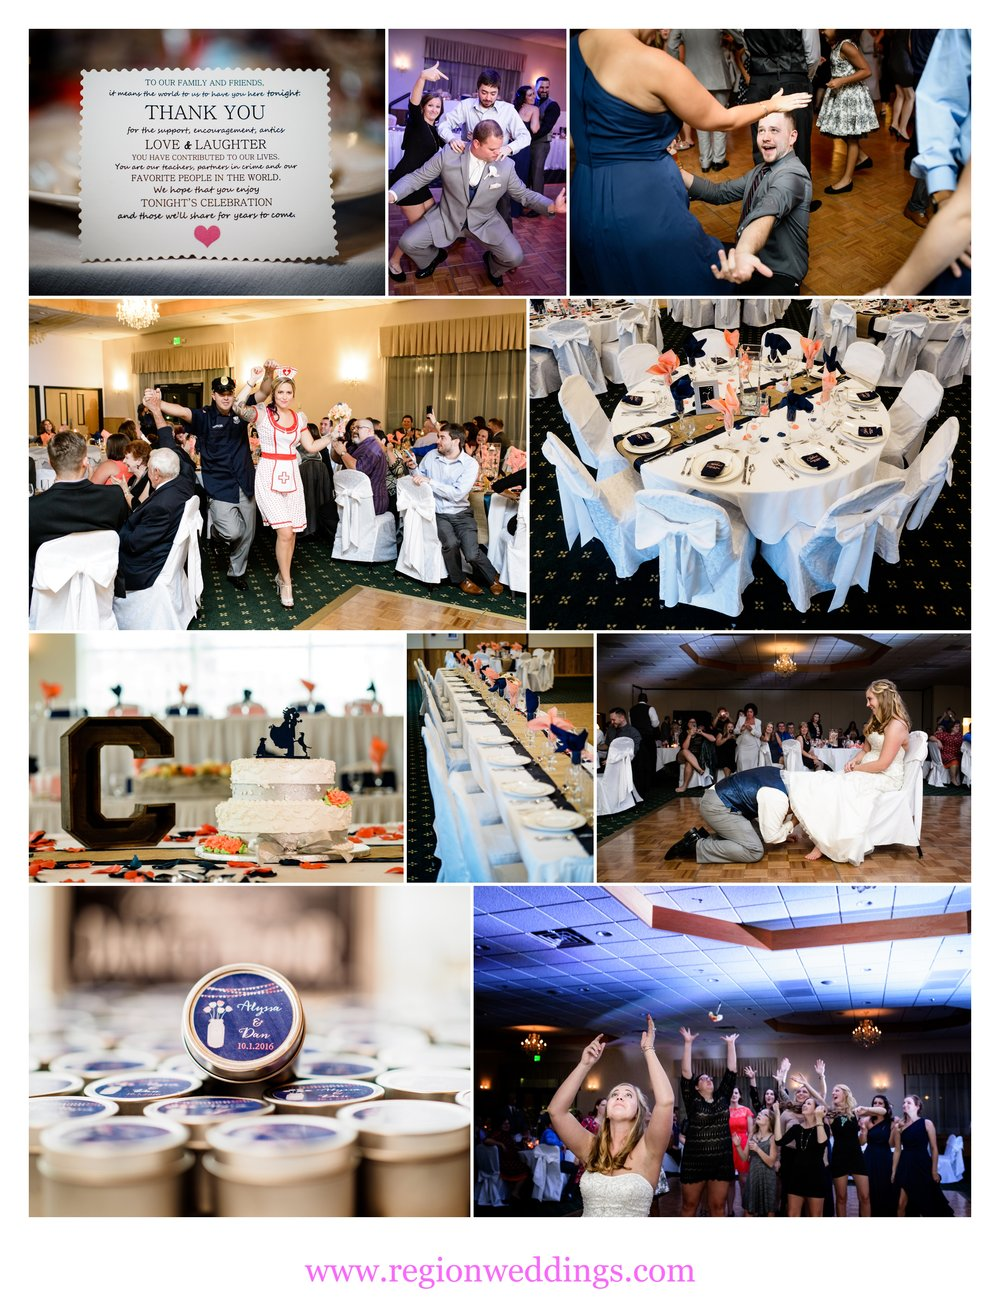 An October wedding reception at The Patrician Banquet Center.